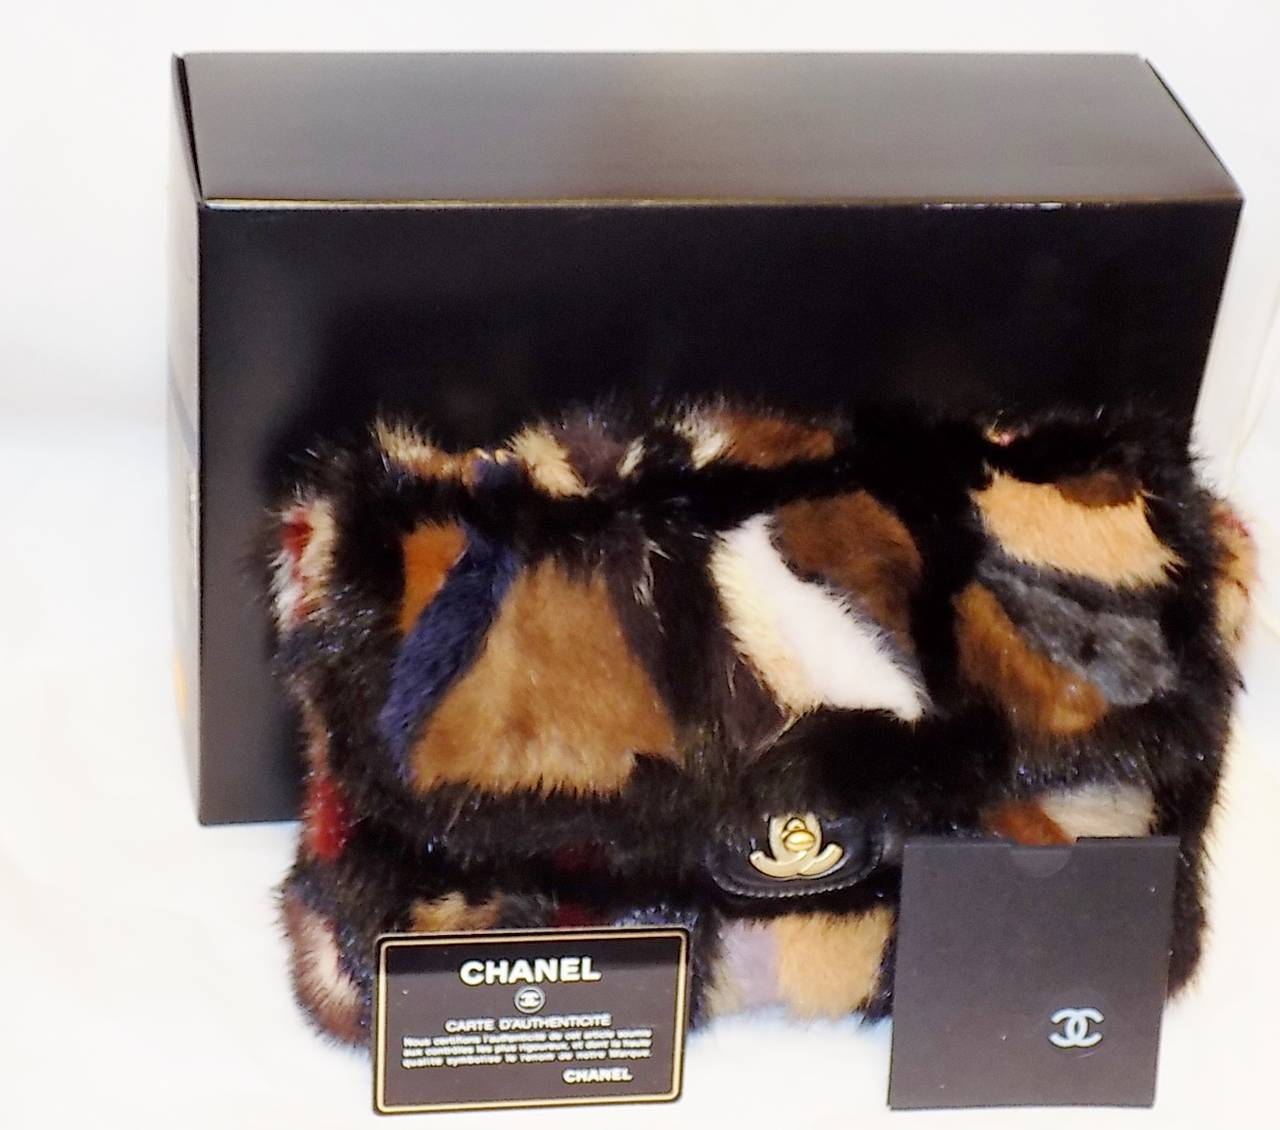 Chanel Arm Candy Multi Color Mink Fur Bag New In Box Coll